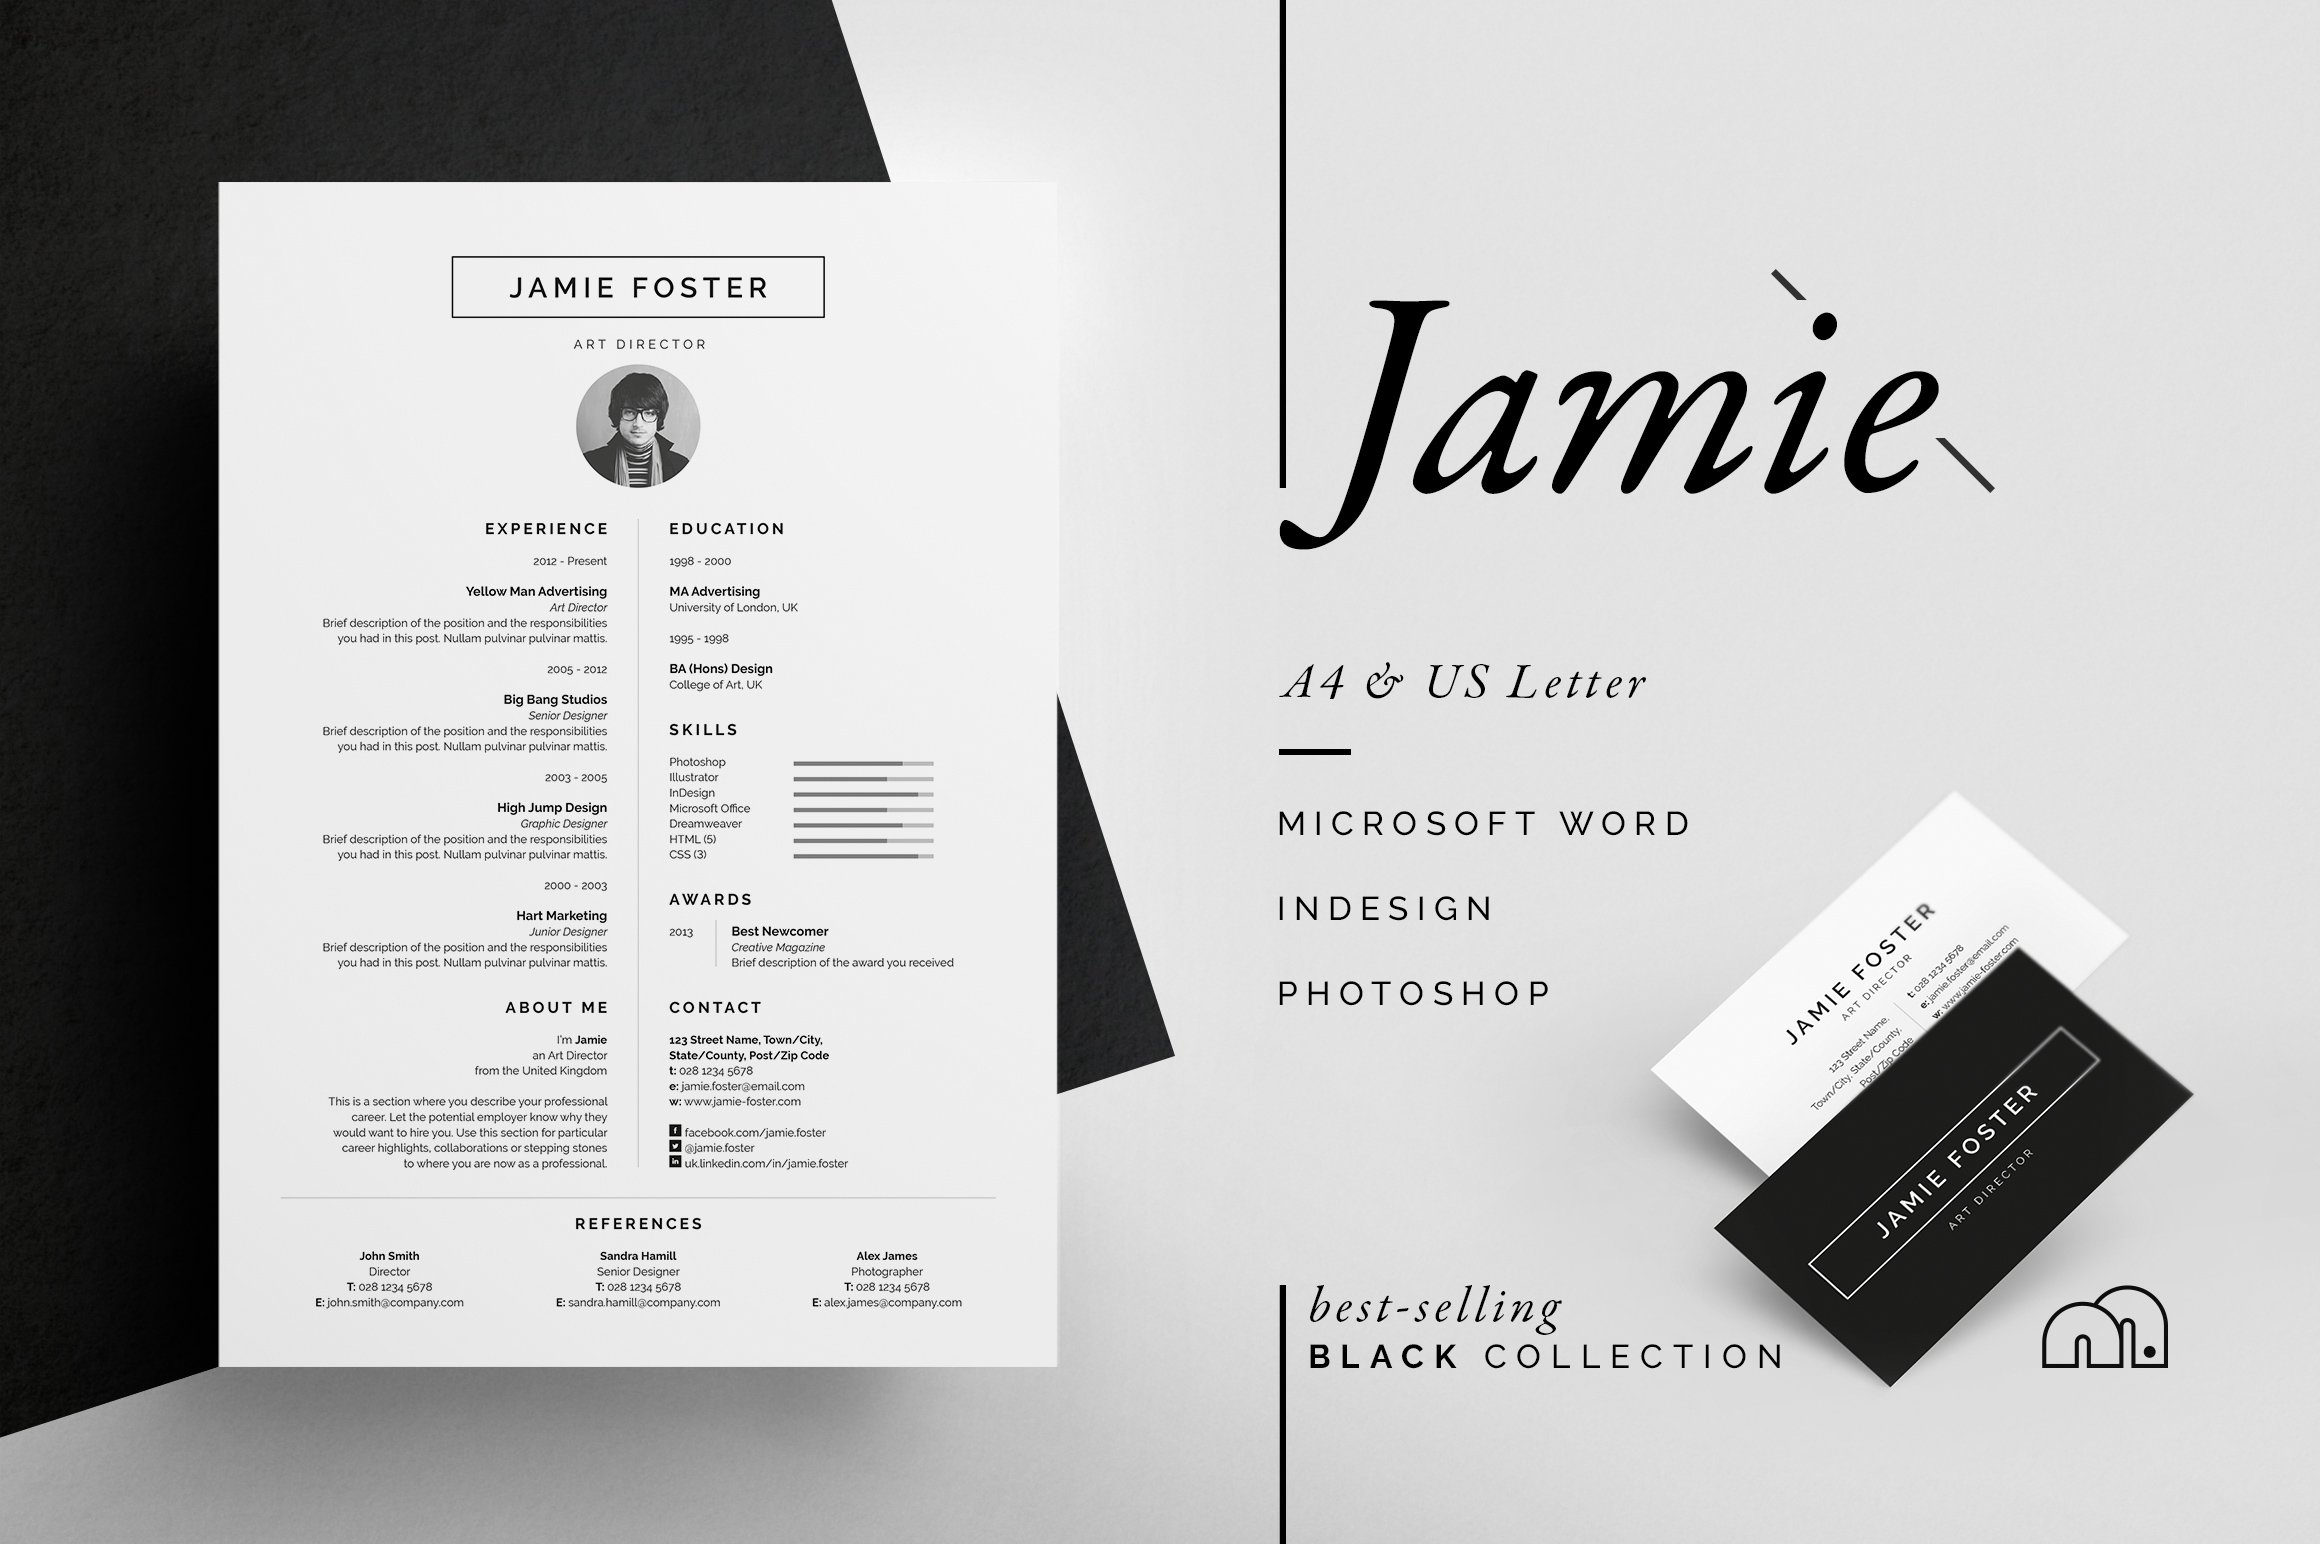 Resume 101  Creative Ways To Get Your Resume Noticed  Creative Market Blog Different Types Of Resumes Excel with Waitress Resume Skills Excel Resumecv  Jamie Military Resume Example